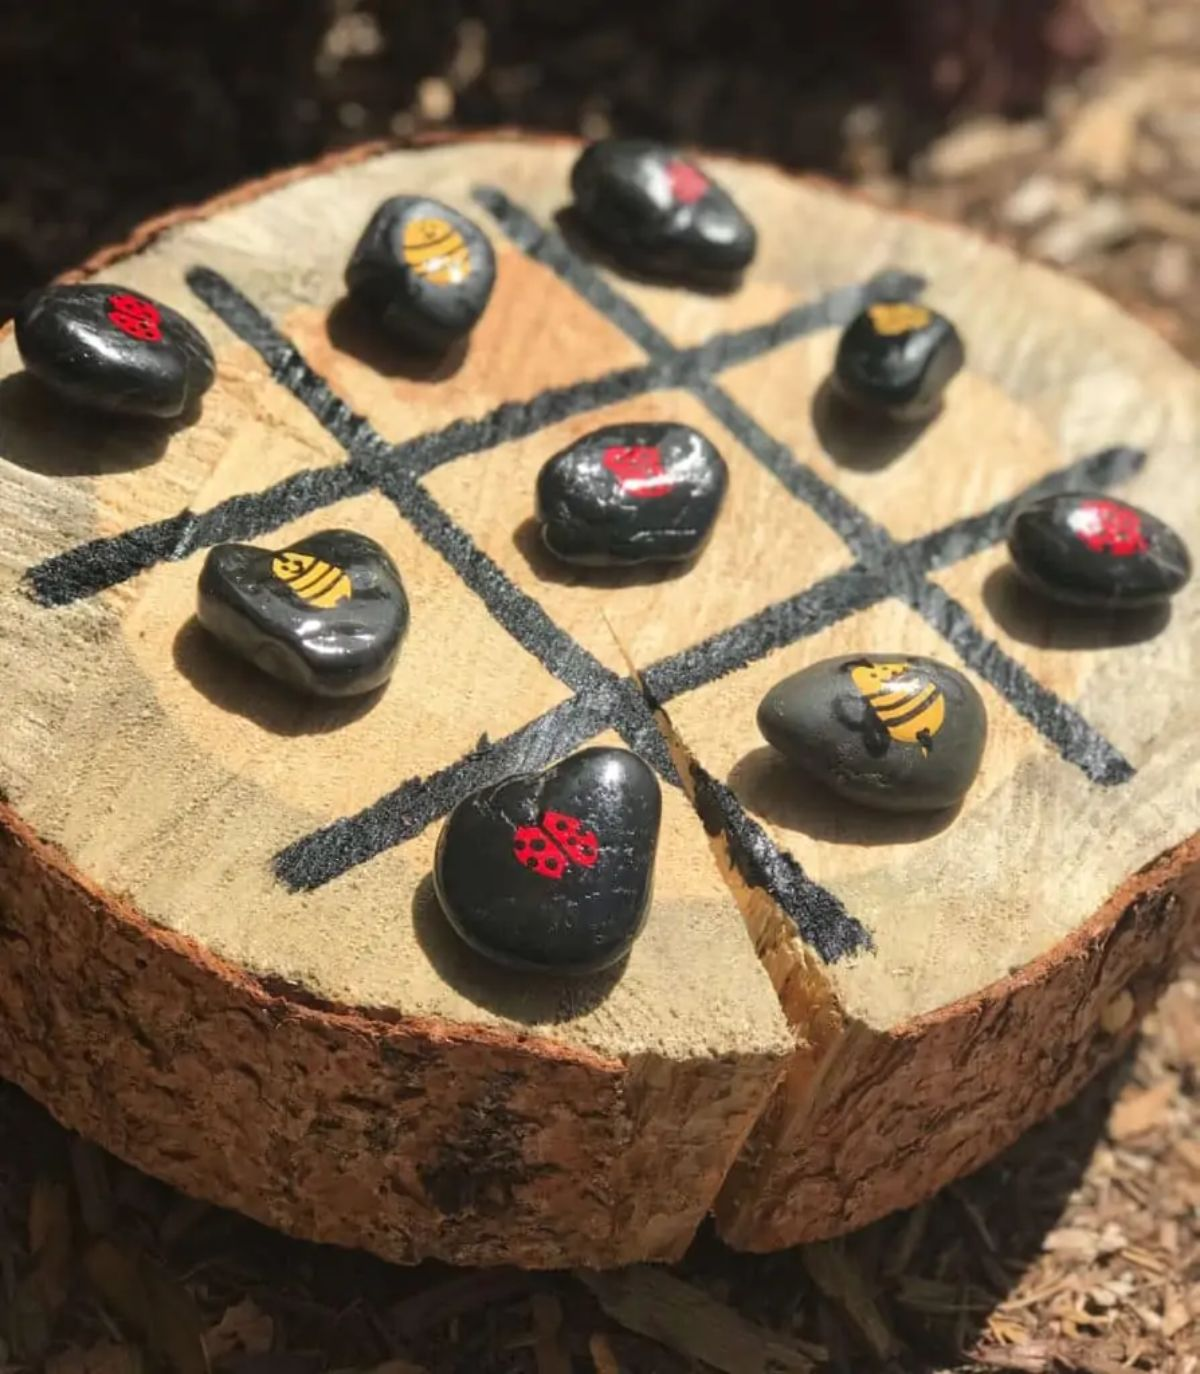 A log slice sits on some dirt, with a tic tac toe board painted on it. 9 painted stones sit in the squares